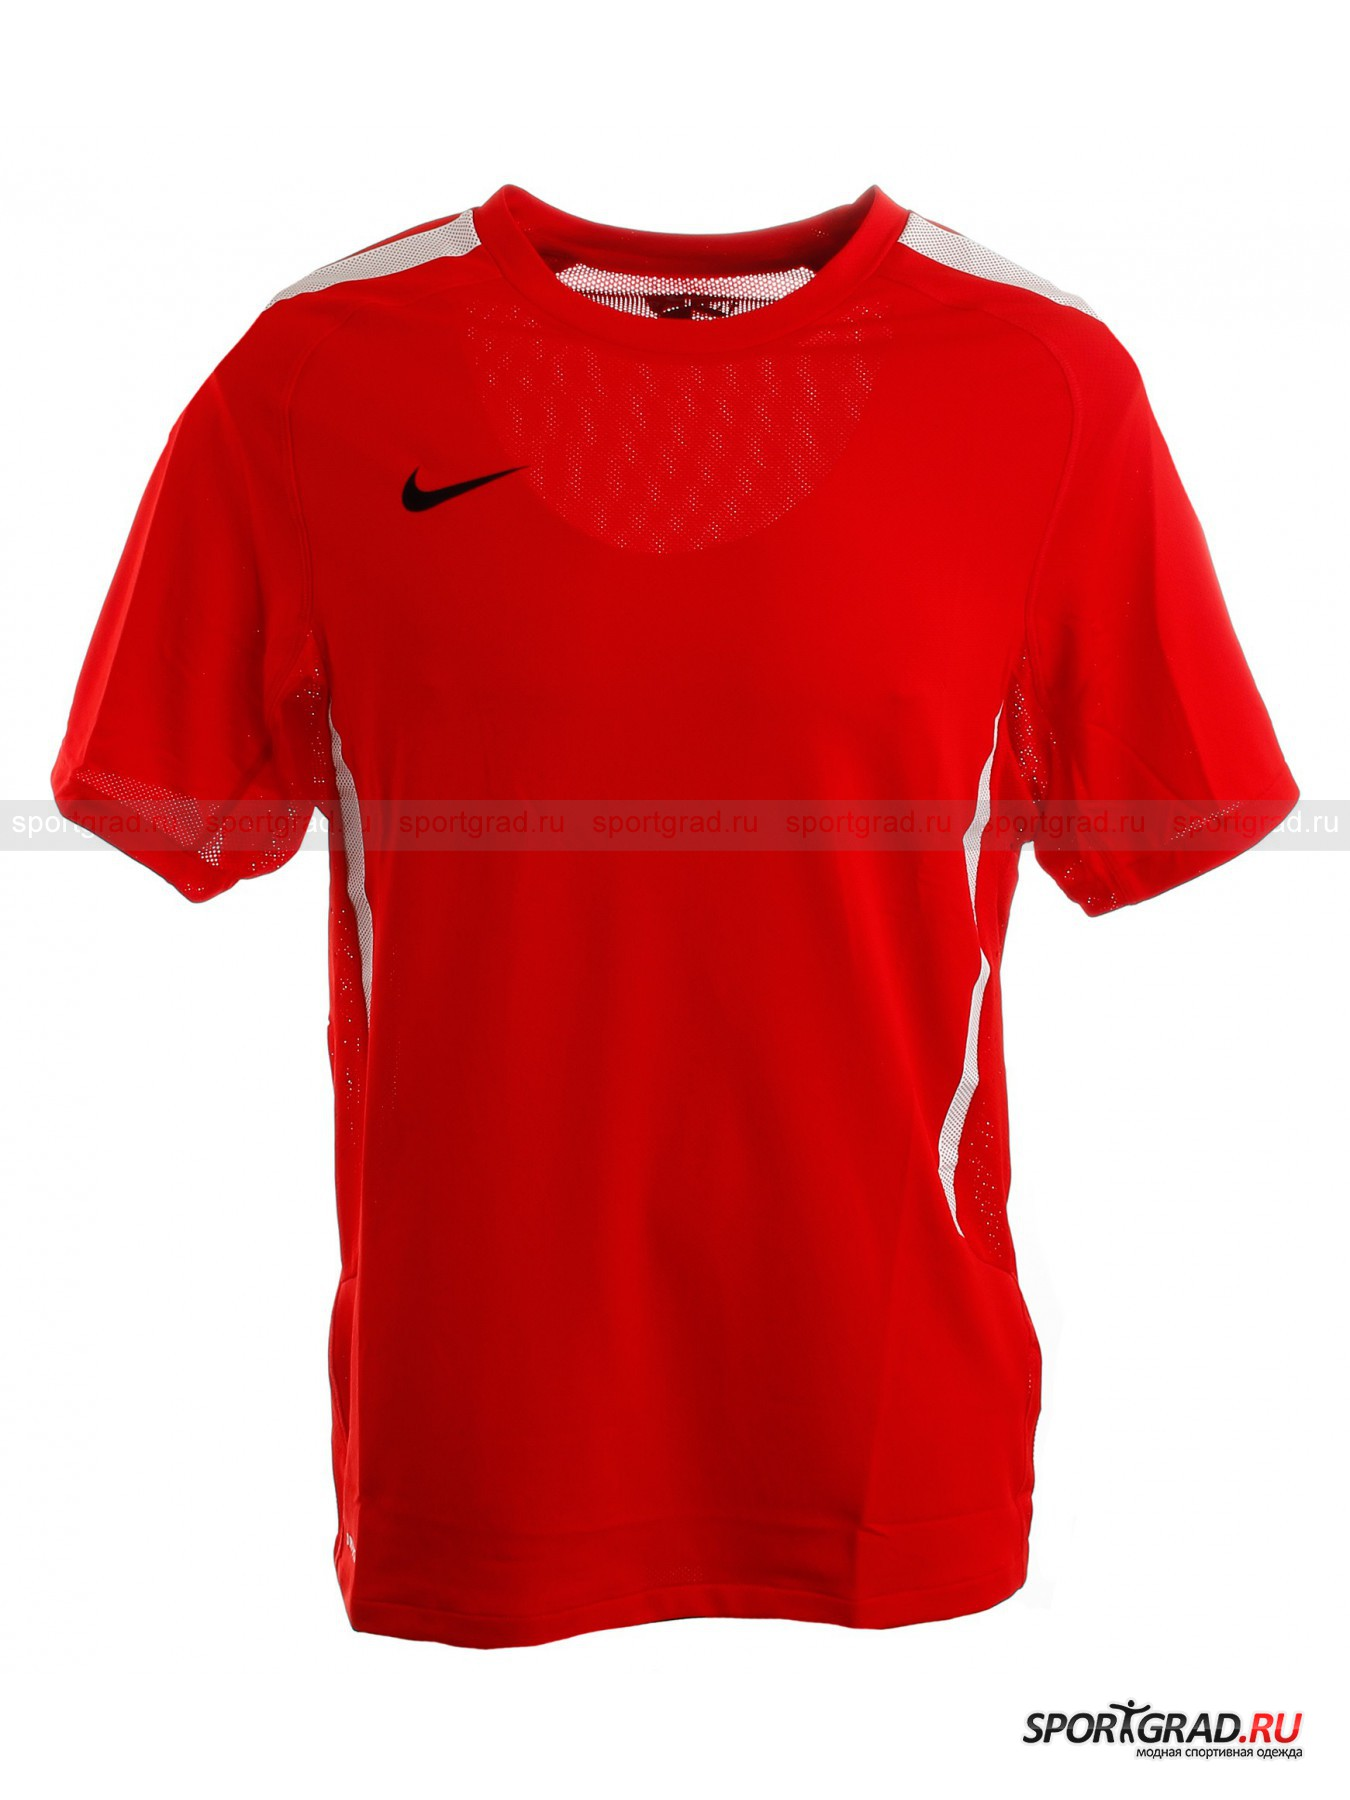 Футболка мужская ELITE ULTIMATE SS TRAINING TOP NIKE от Спортград